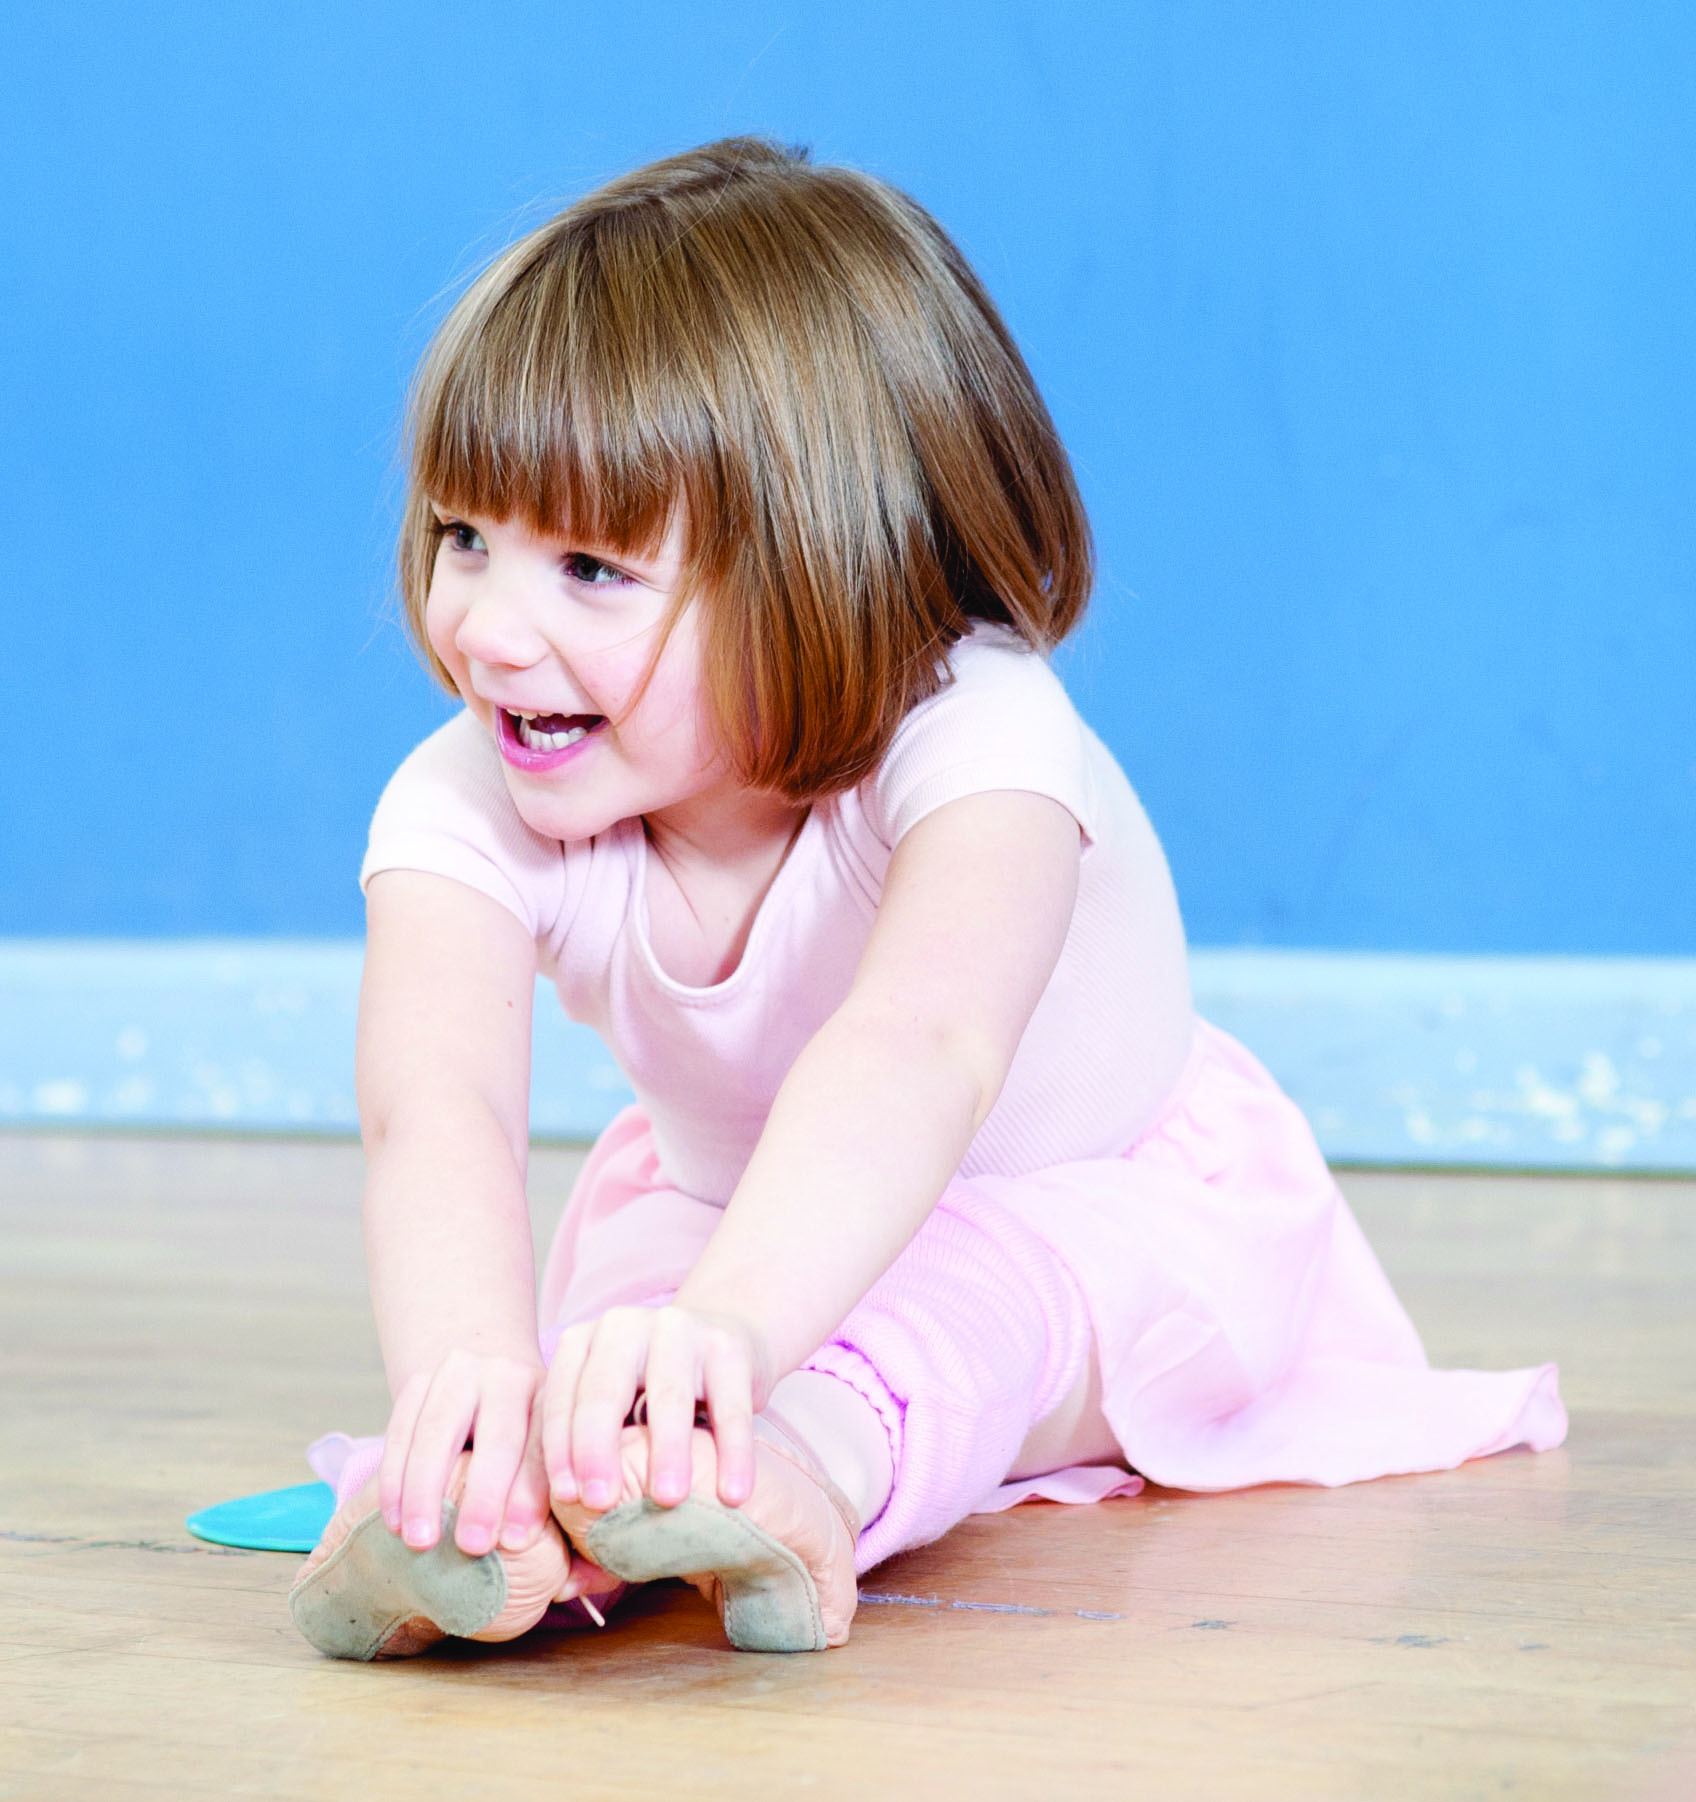 Twinkle Twos Mini-Session NOW OPEN